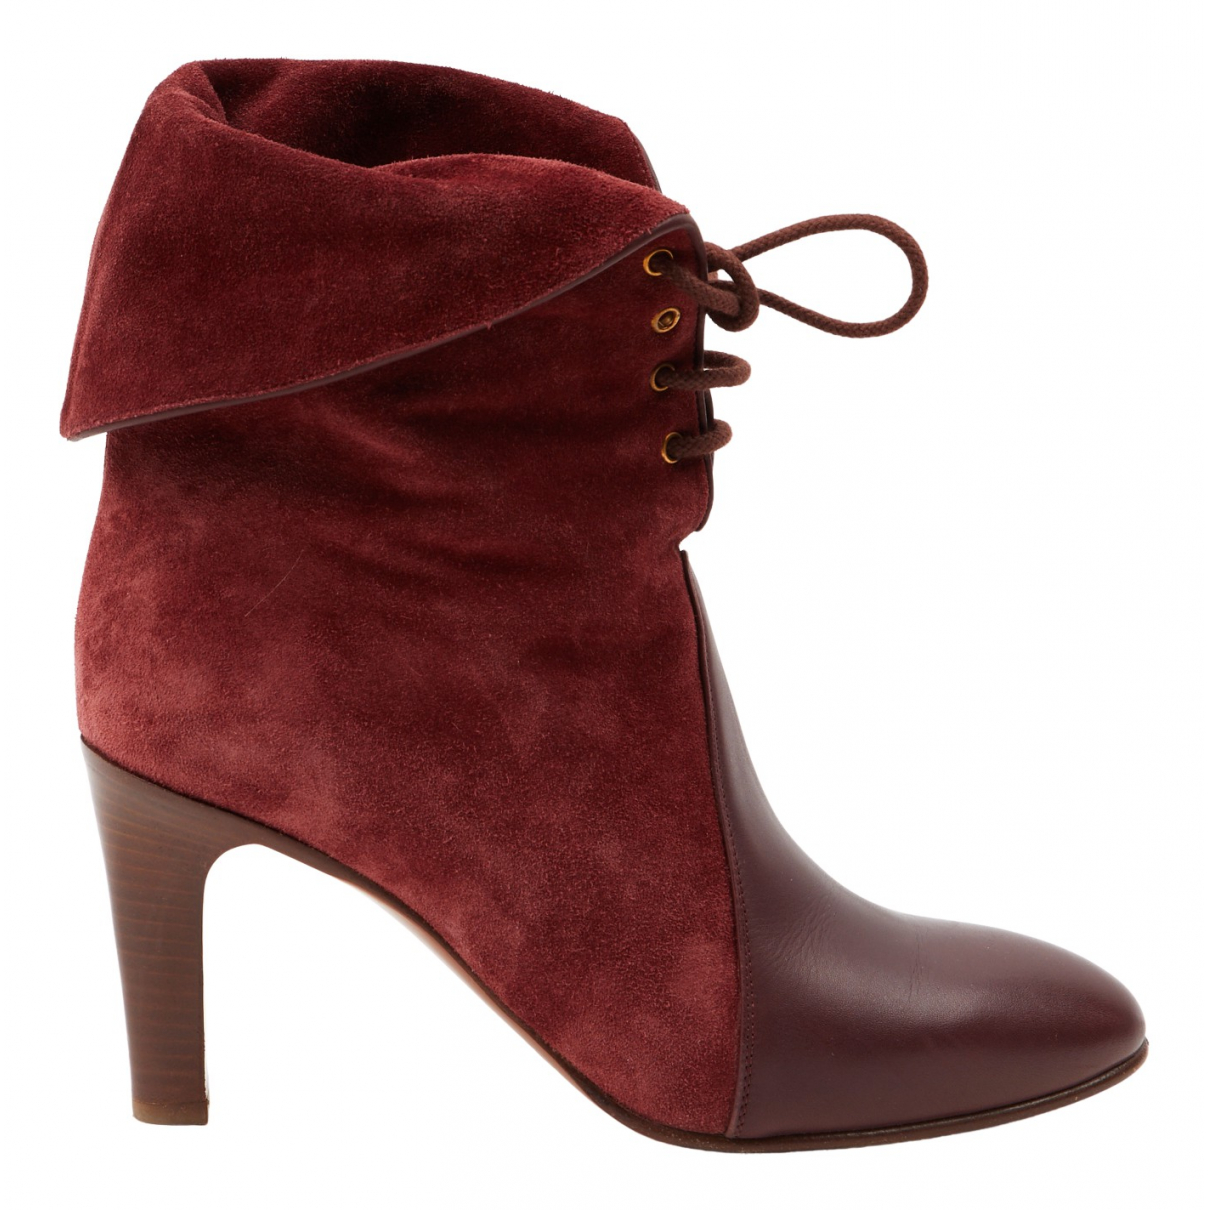 Chloé N Burgundy Suede Ankle boots for Women 38 EU